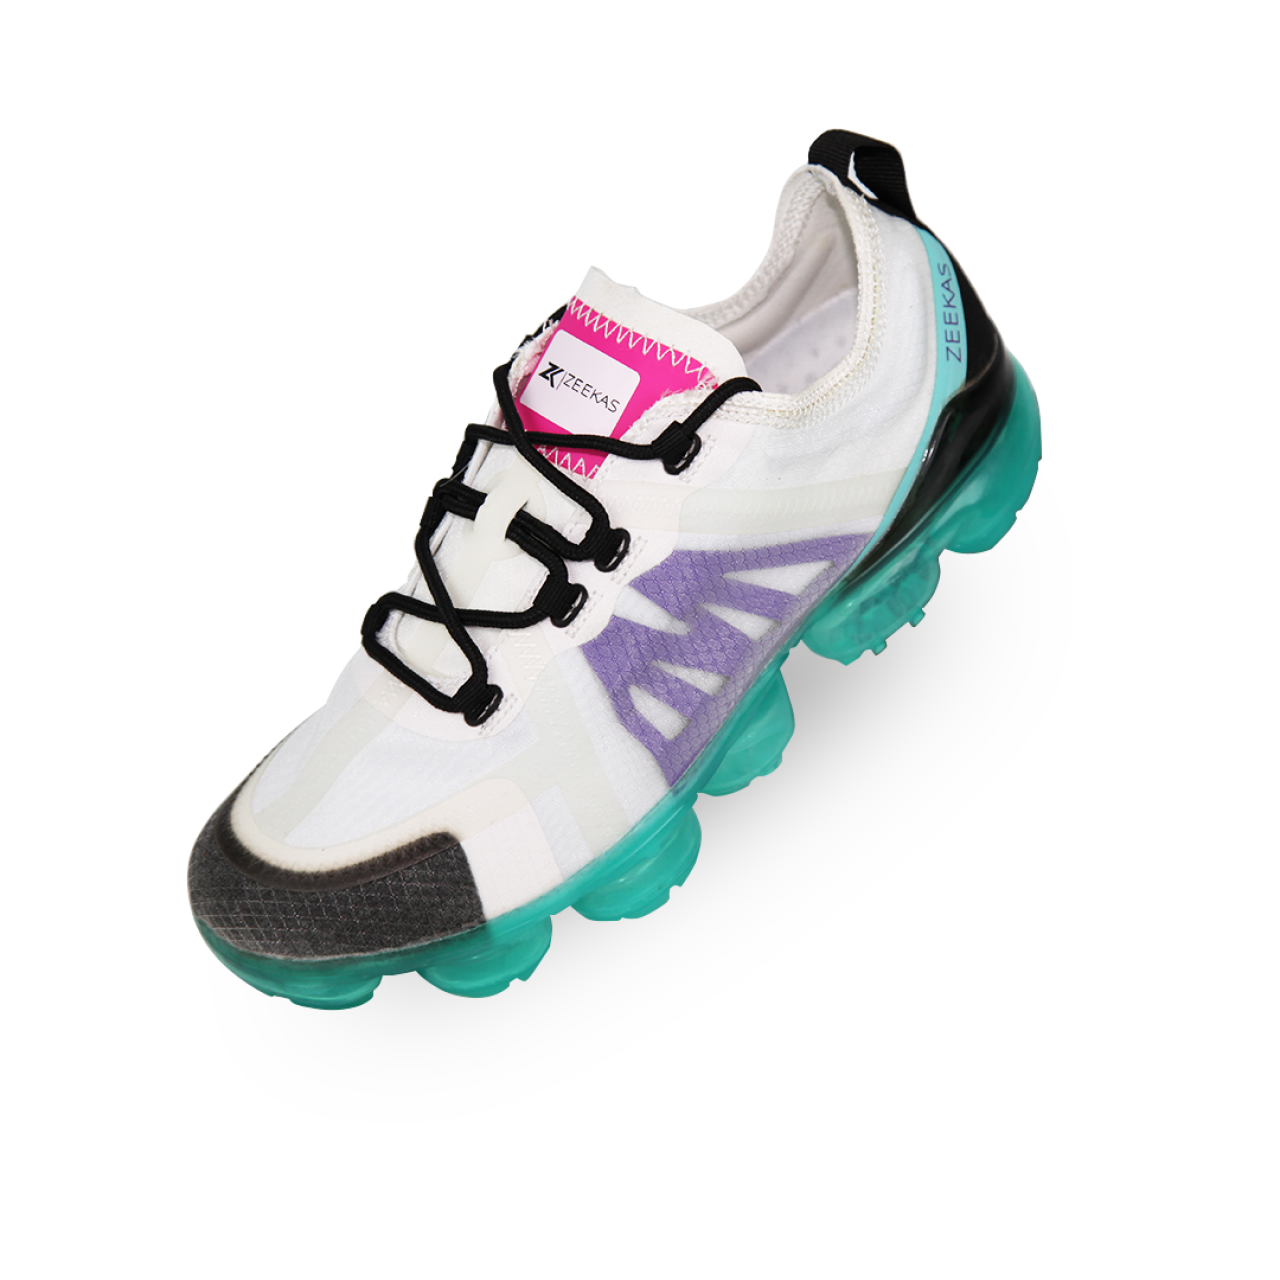 Zeekas Men's Air Max Textured Multi-Color Lace-Up Sneakers / Sports Shoes